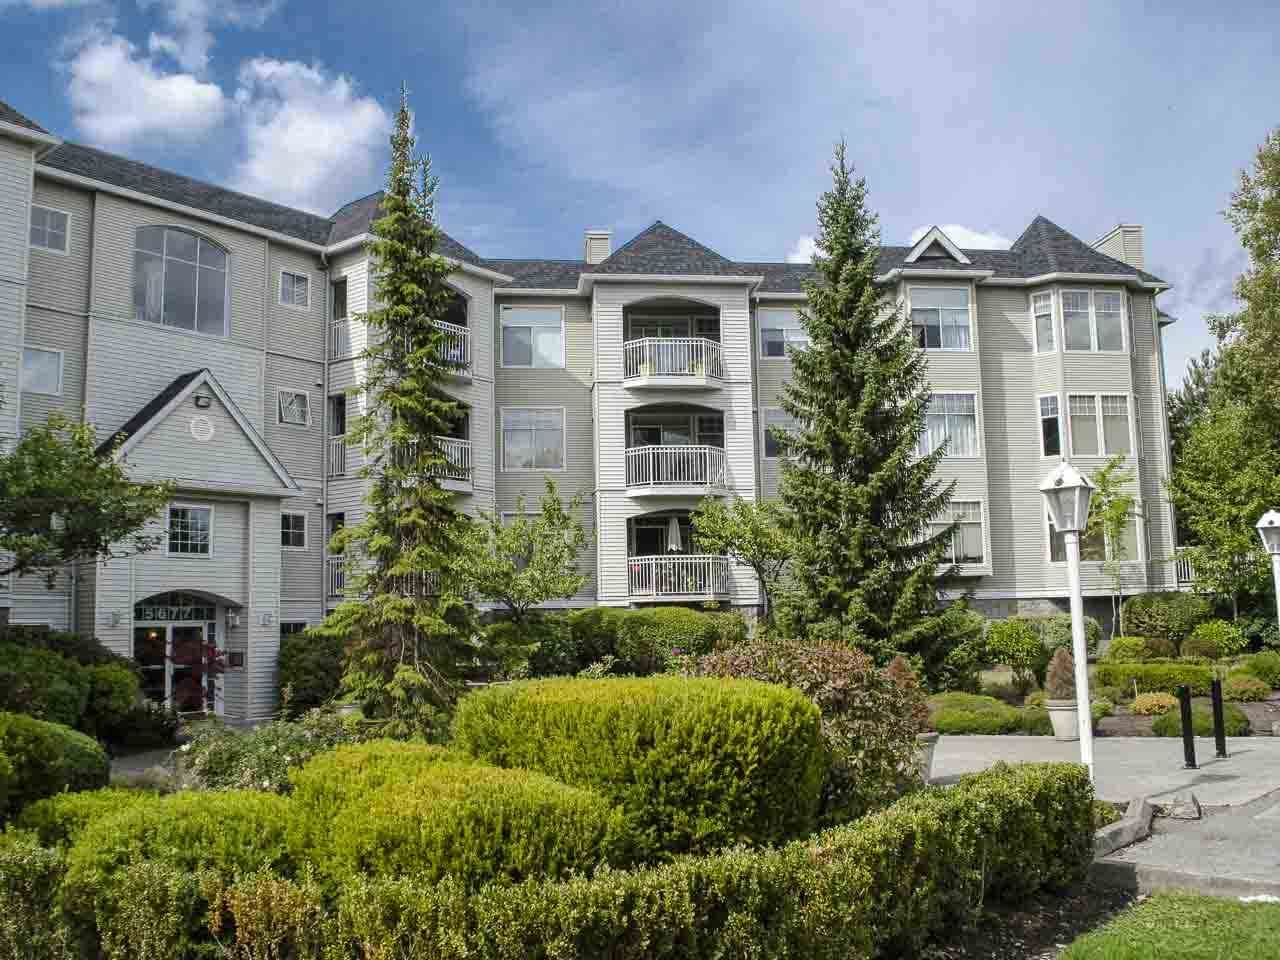 """Main Photo: 303 5677 208 Street in Langley: Langley City Condo for sale in """"IVY LEA"""" : MLS®# R2000017"""